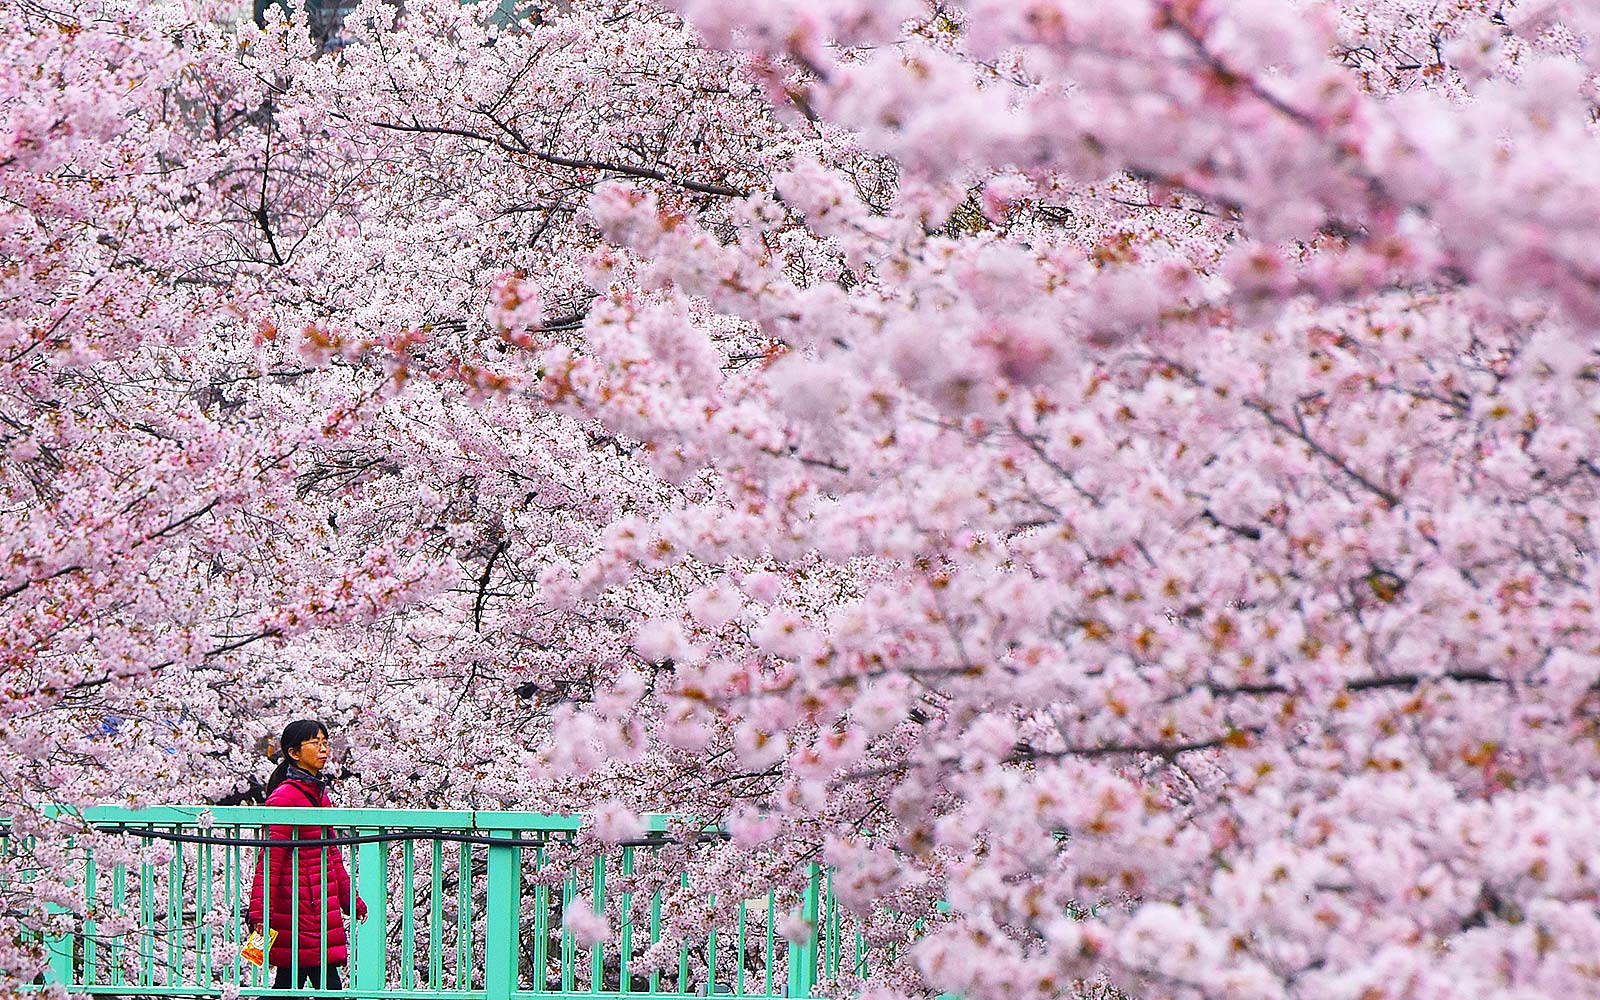 6 Places to See the Cherry Blossoms in Japan This Spring Minus the Crowds